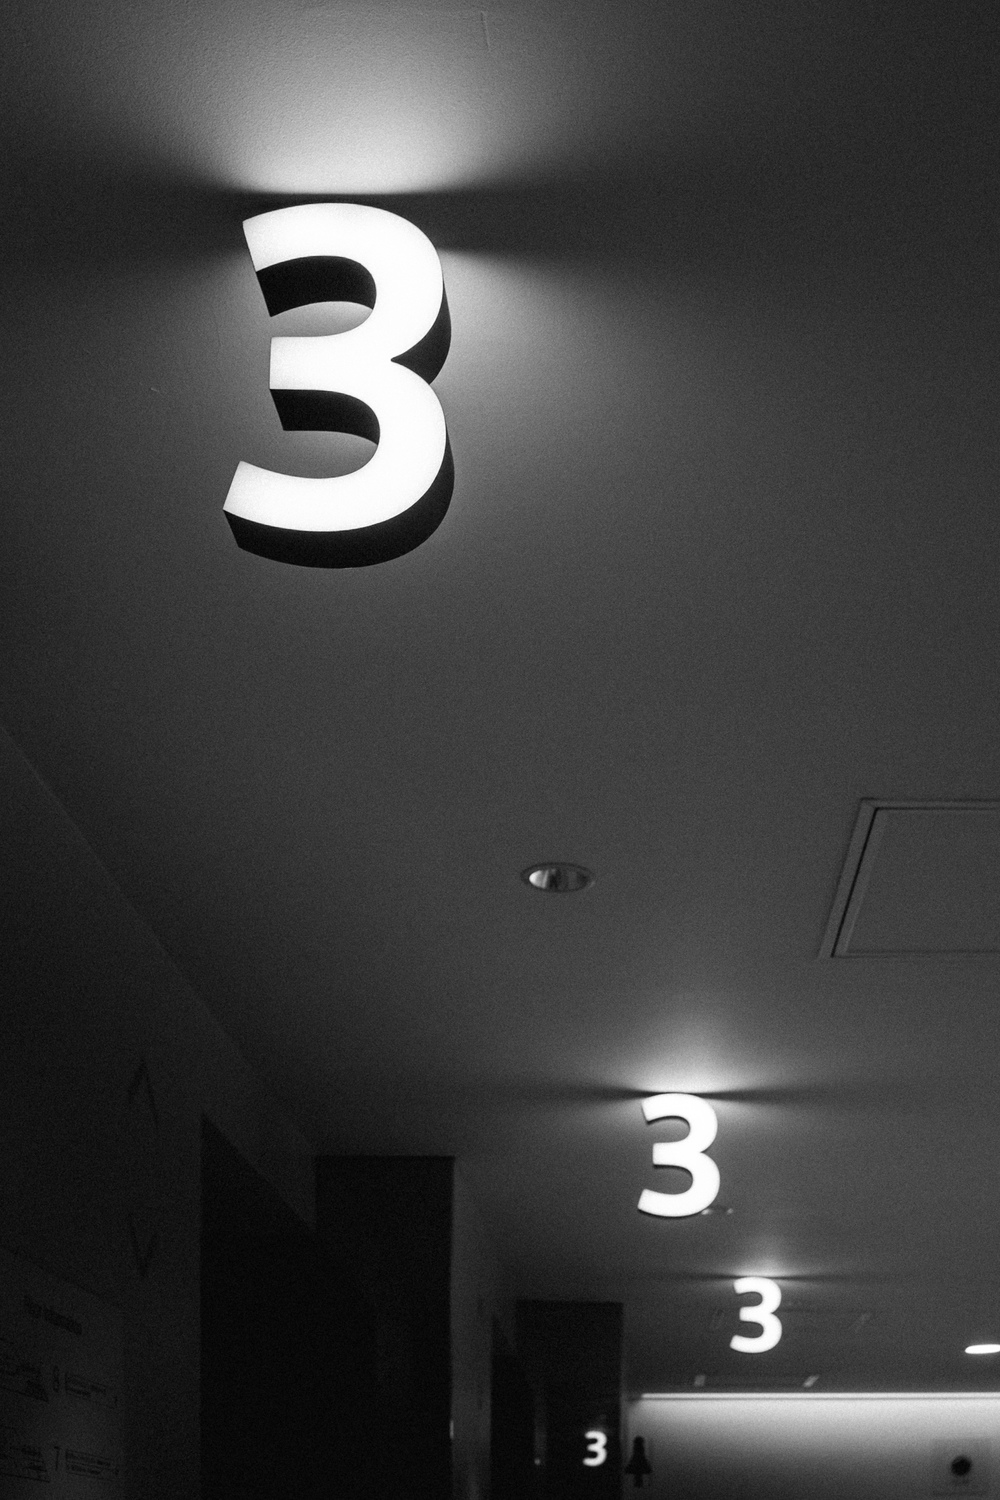 Three | RX3 | 1/33s f/3.3 ISO333 33mm